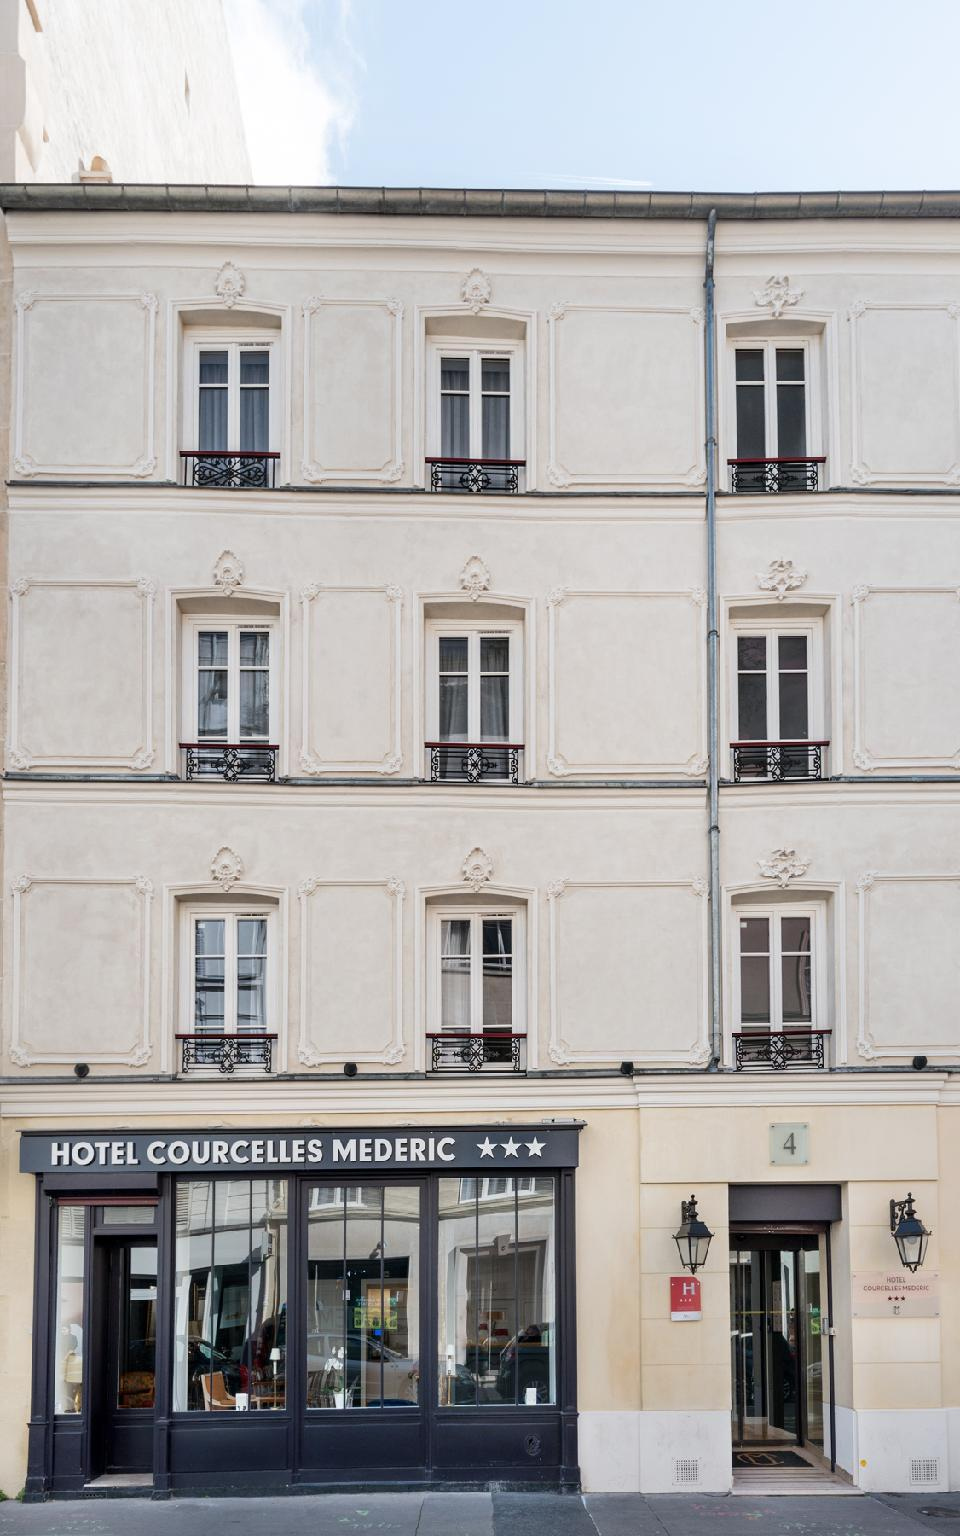 Hotel Courcelles Mederic